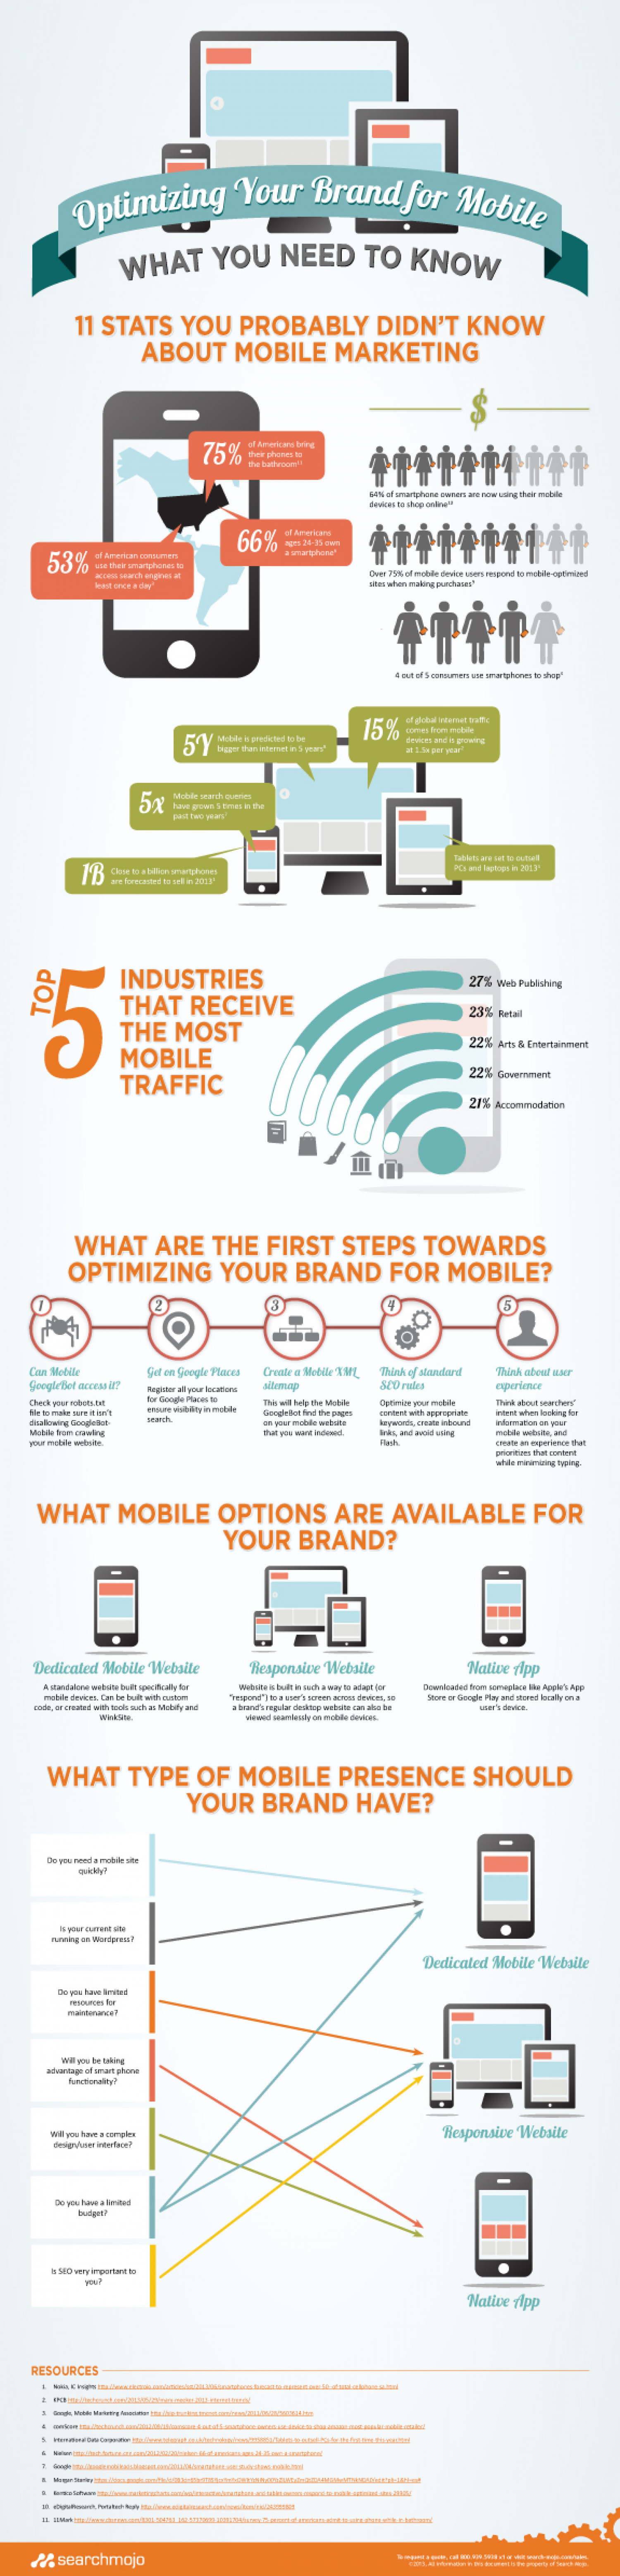 Mobile Marketing Optimization Infographic